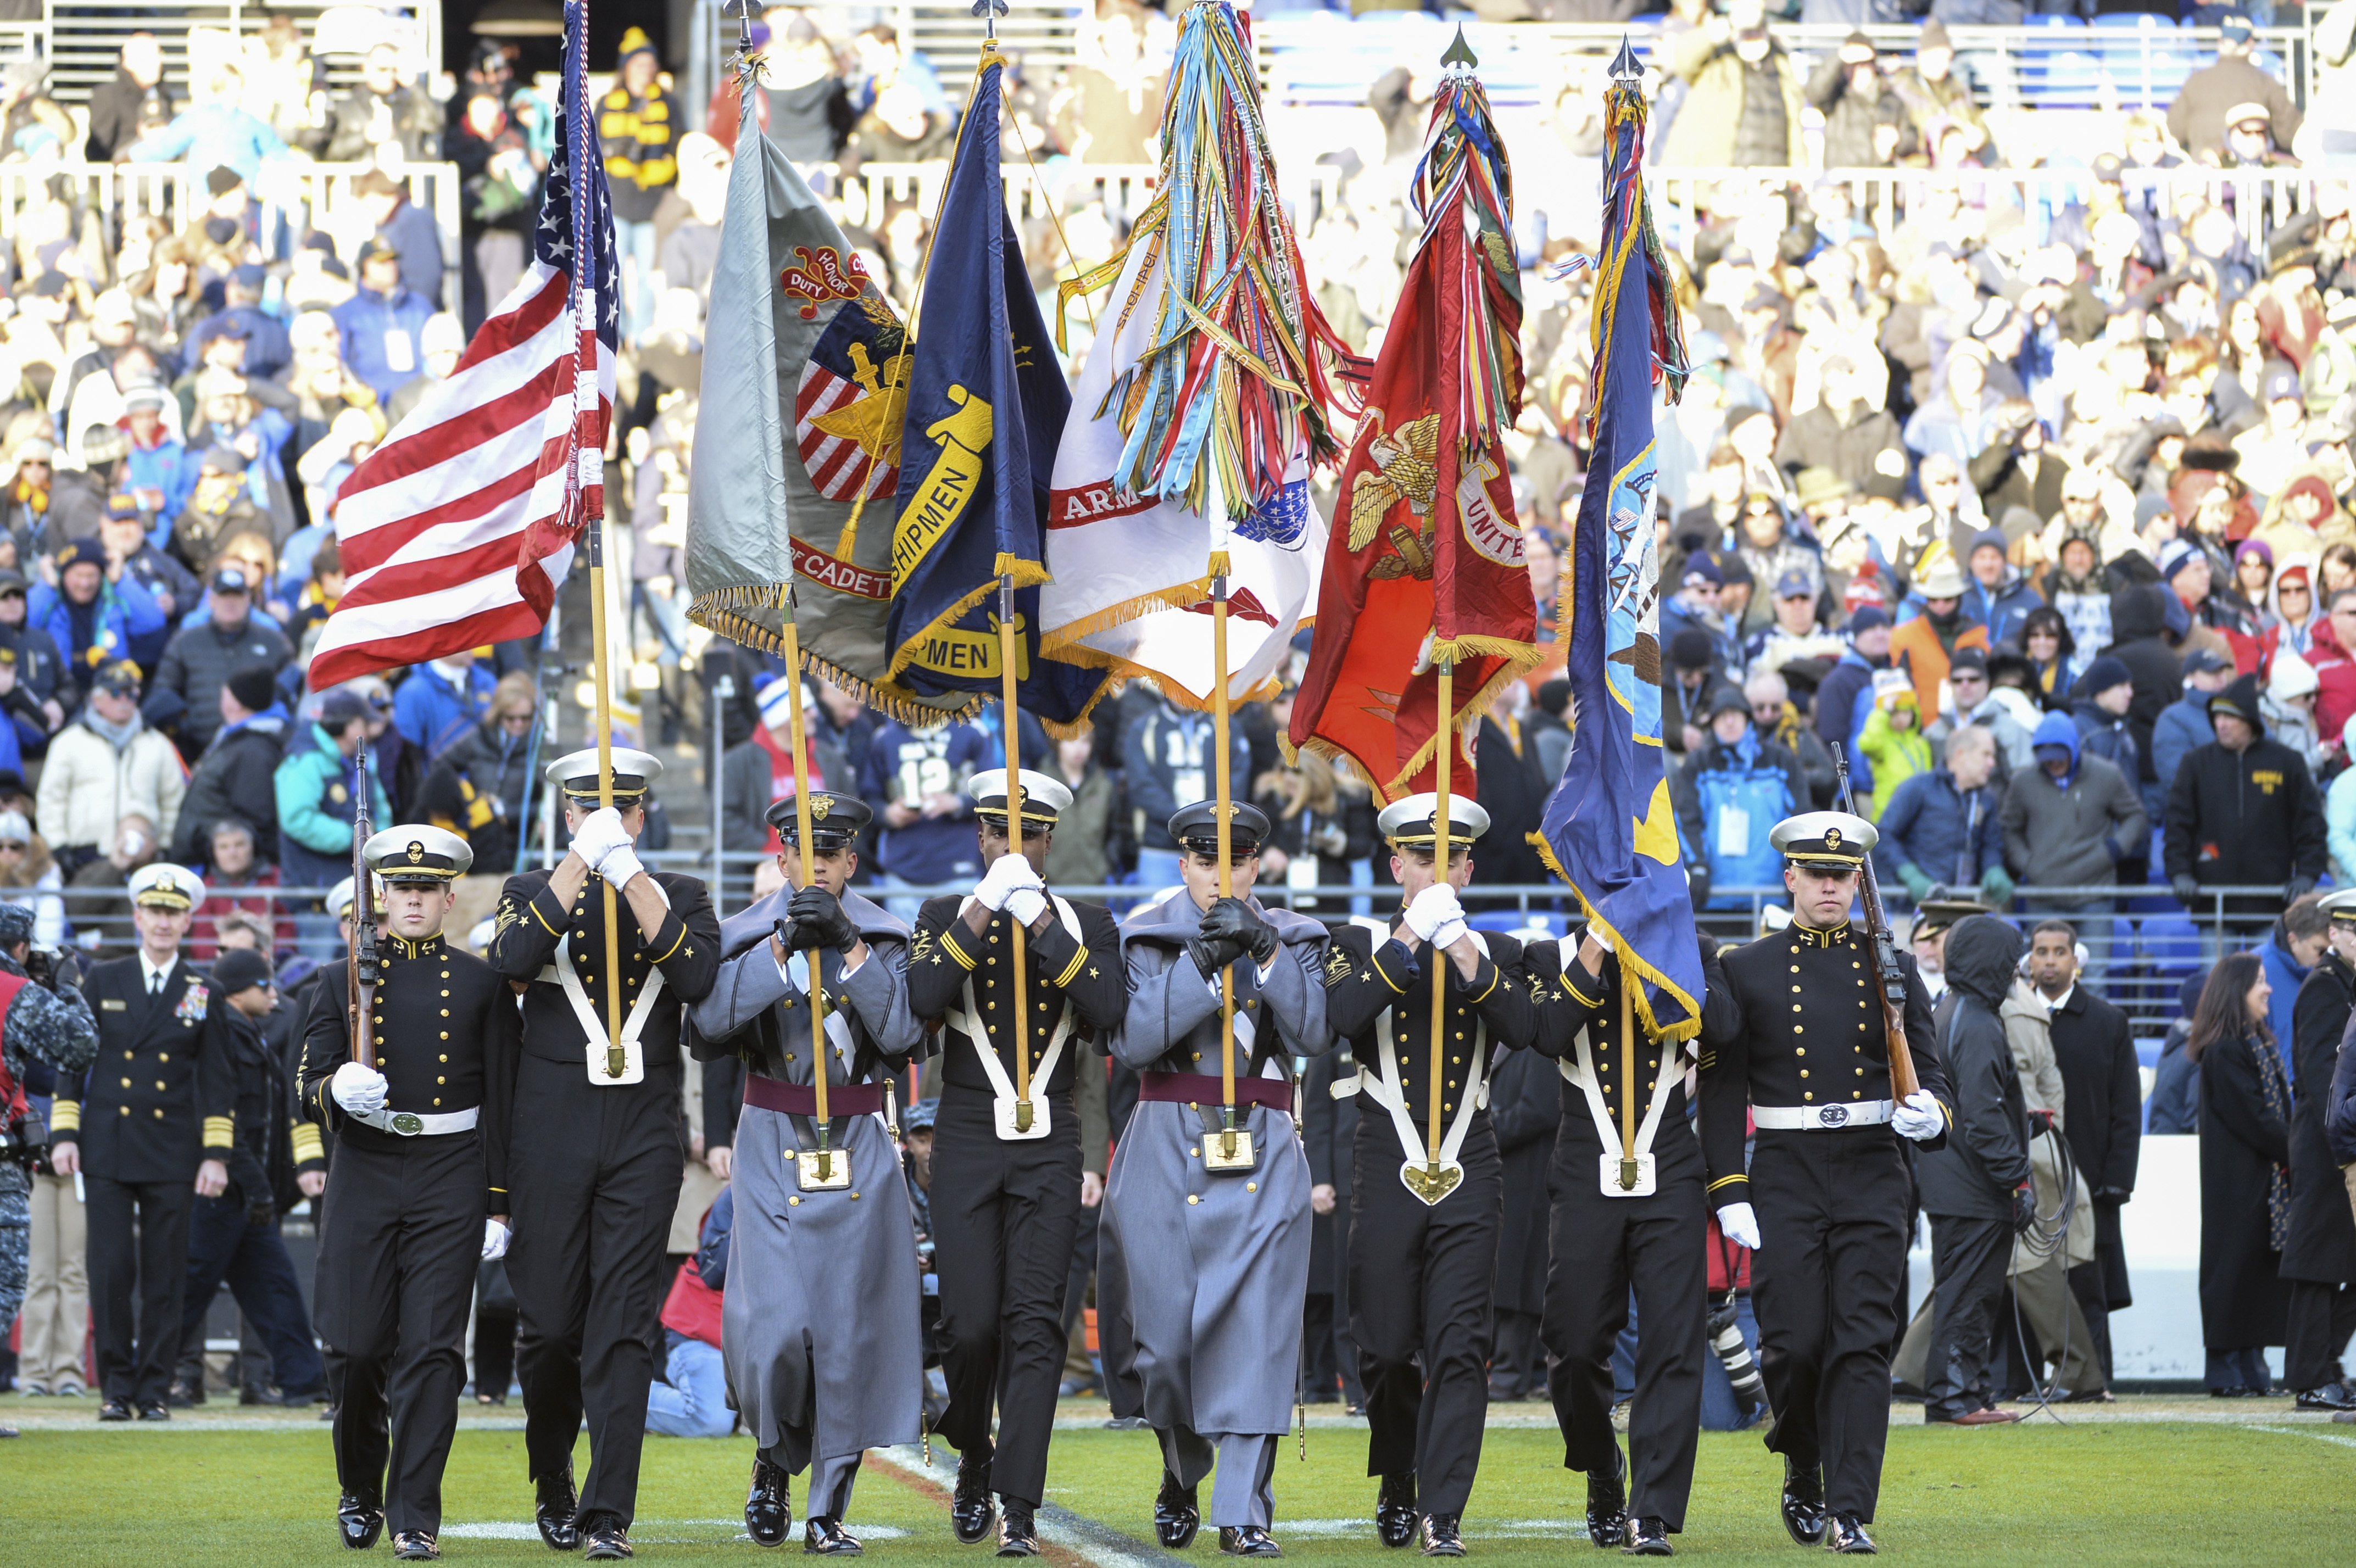 Army Navy Game 2017 Wiki >> File:Army-Navy Game 2016 - Navy Photo 29.jpg - Wikimedia Commons